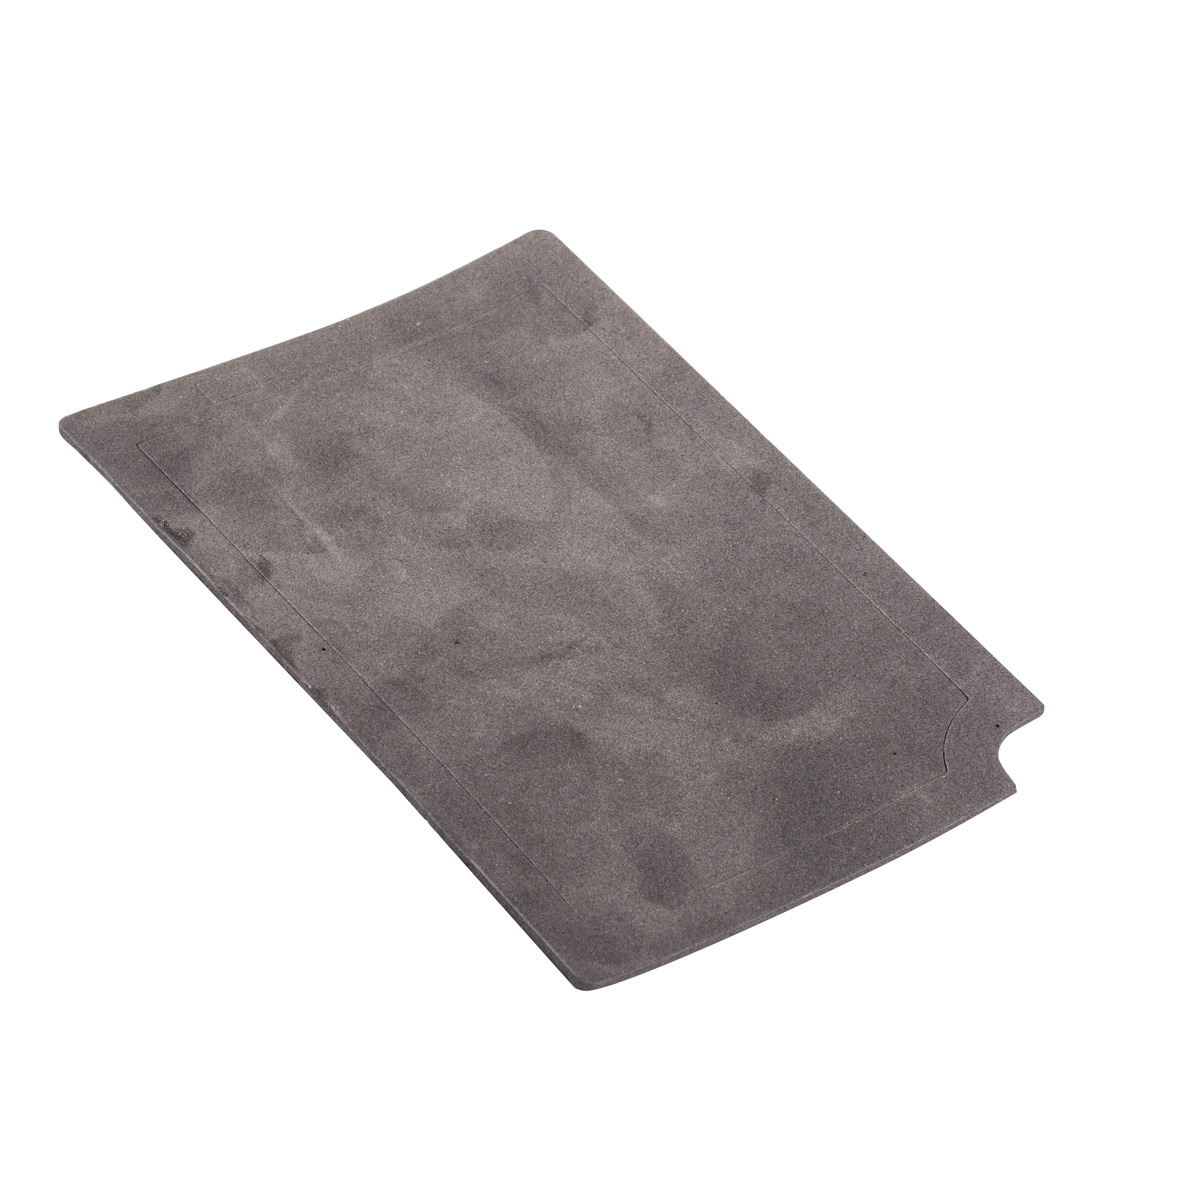 Bag Compartment Gasket For Commercial Upright Vacdcc2Hd